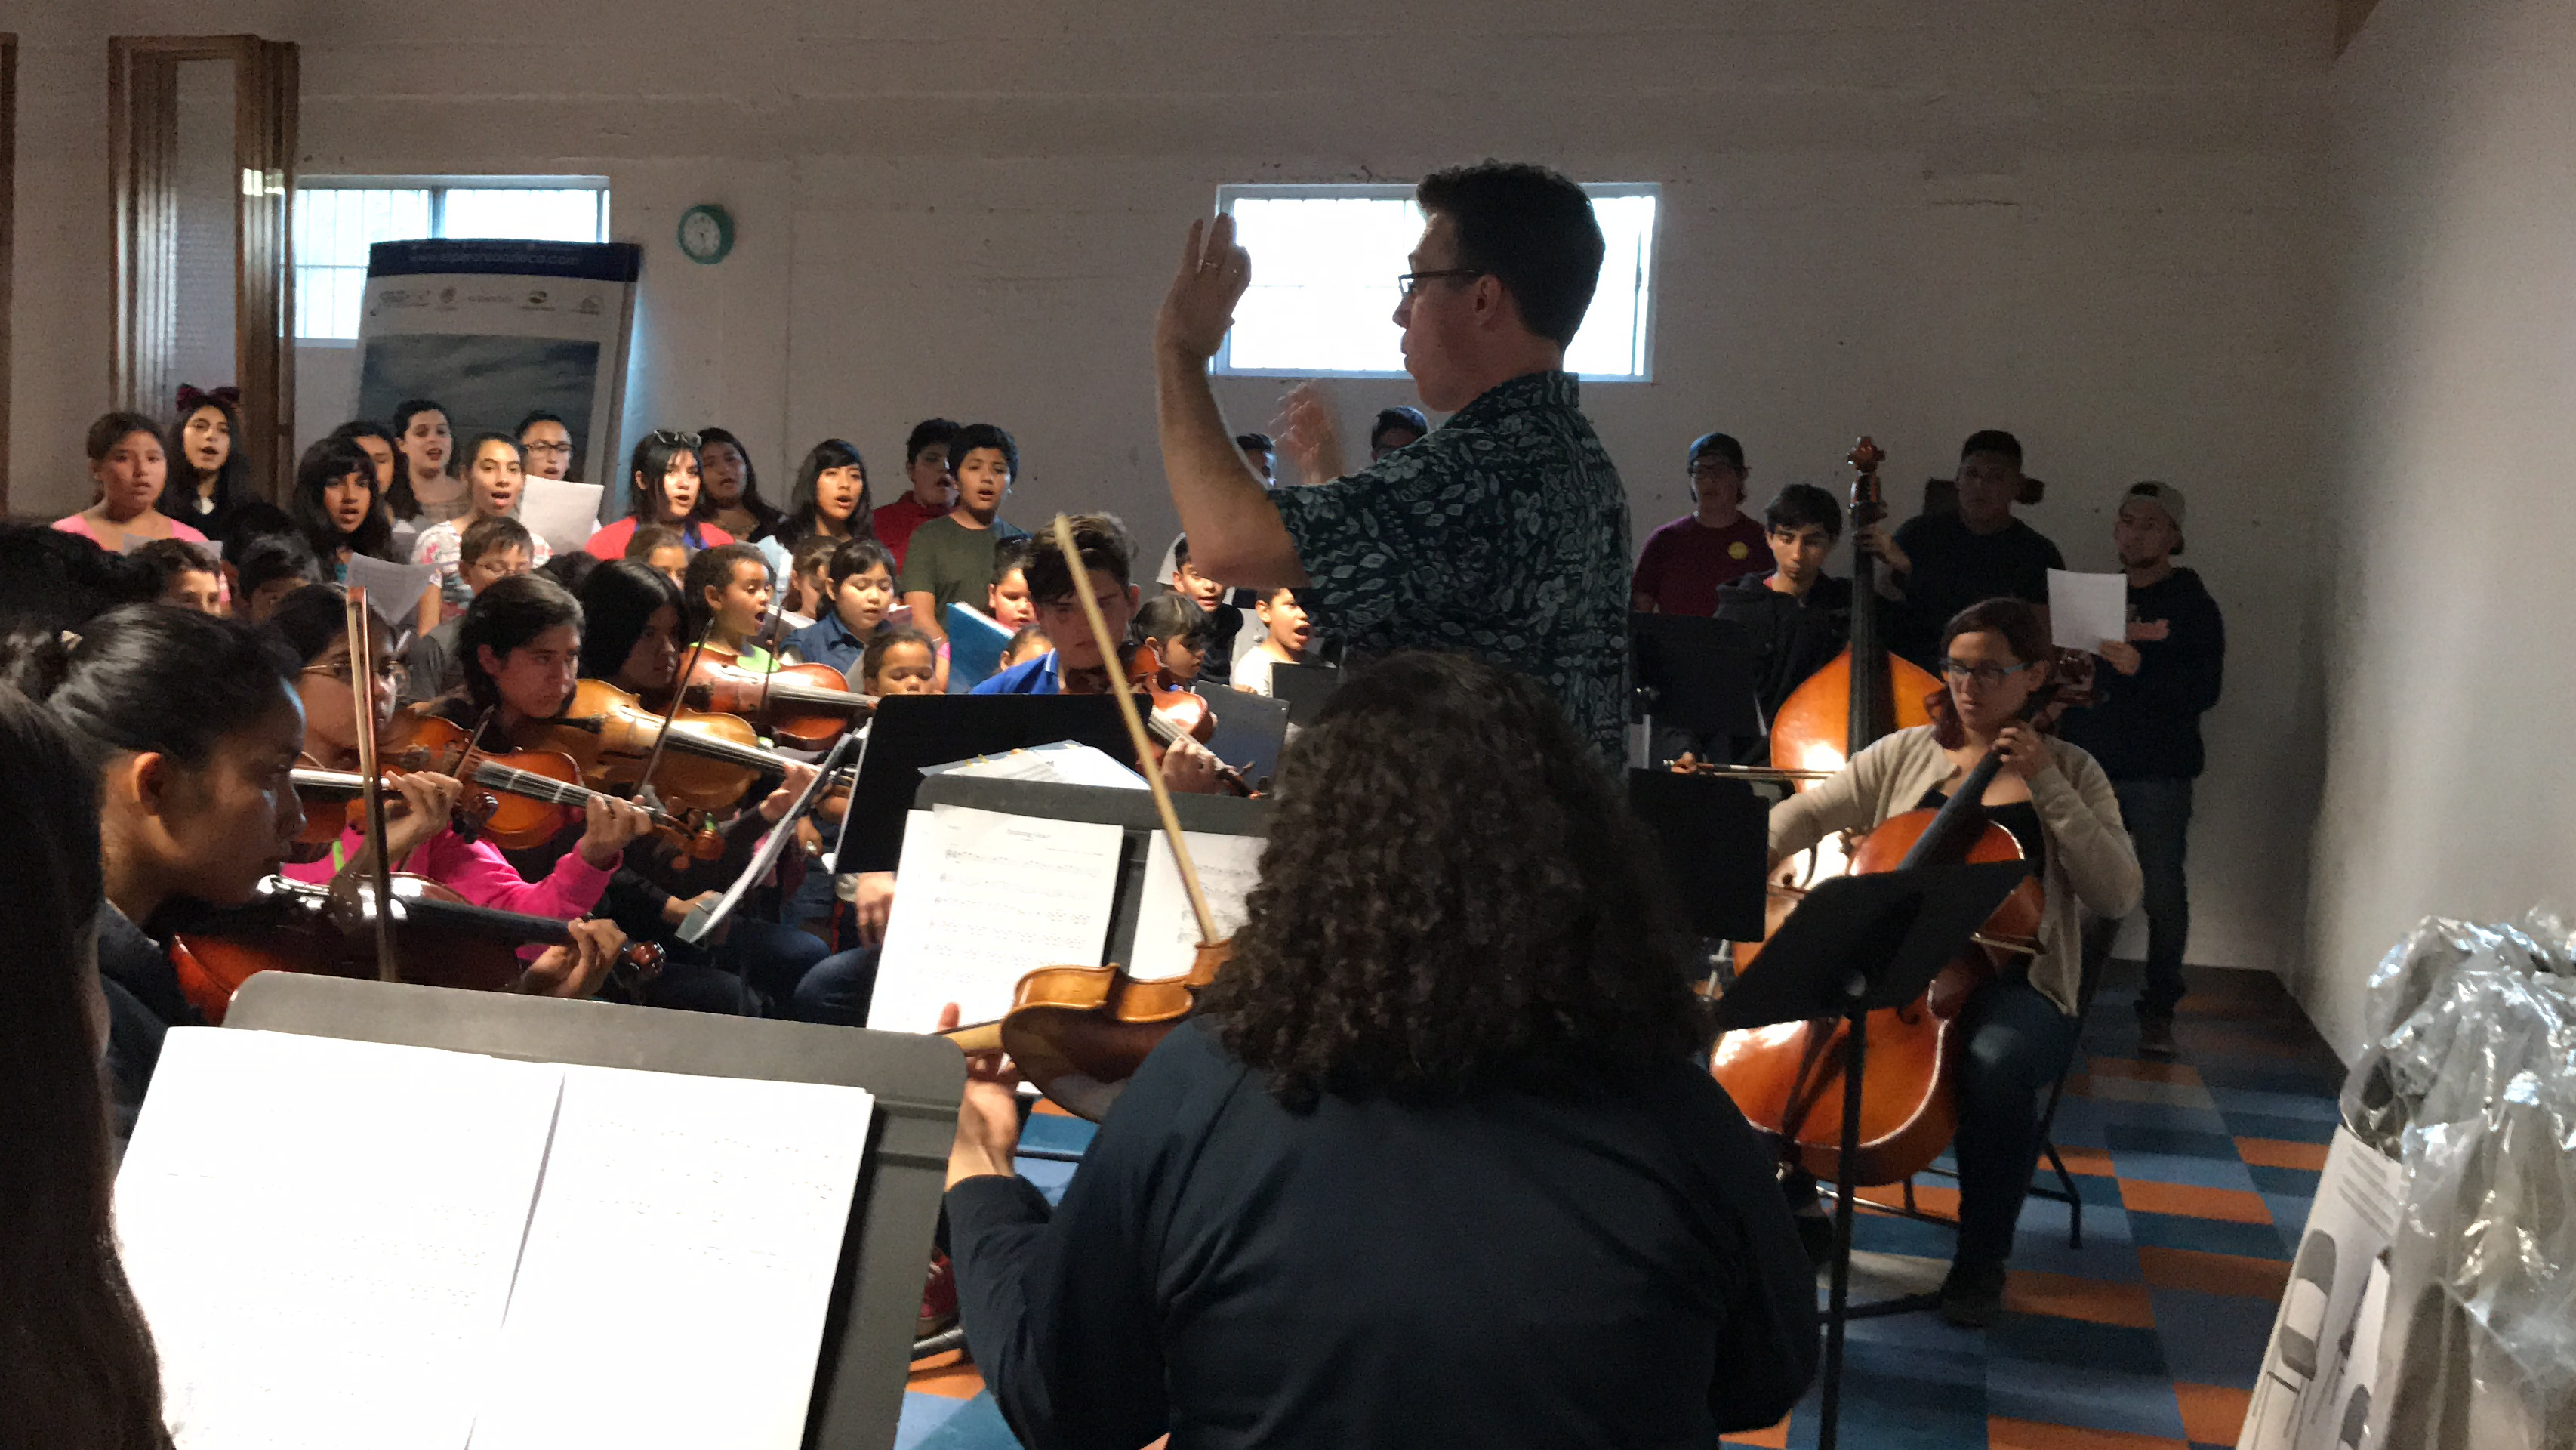 Rehearsal with orchestra